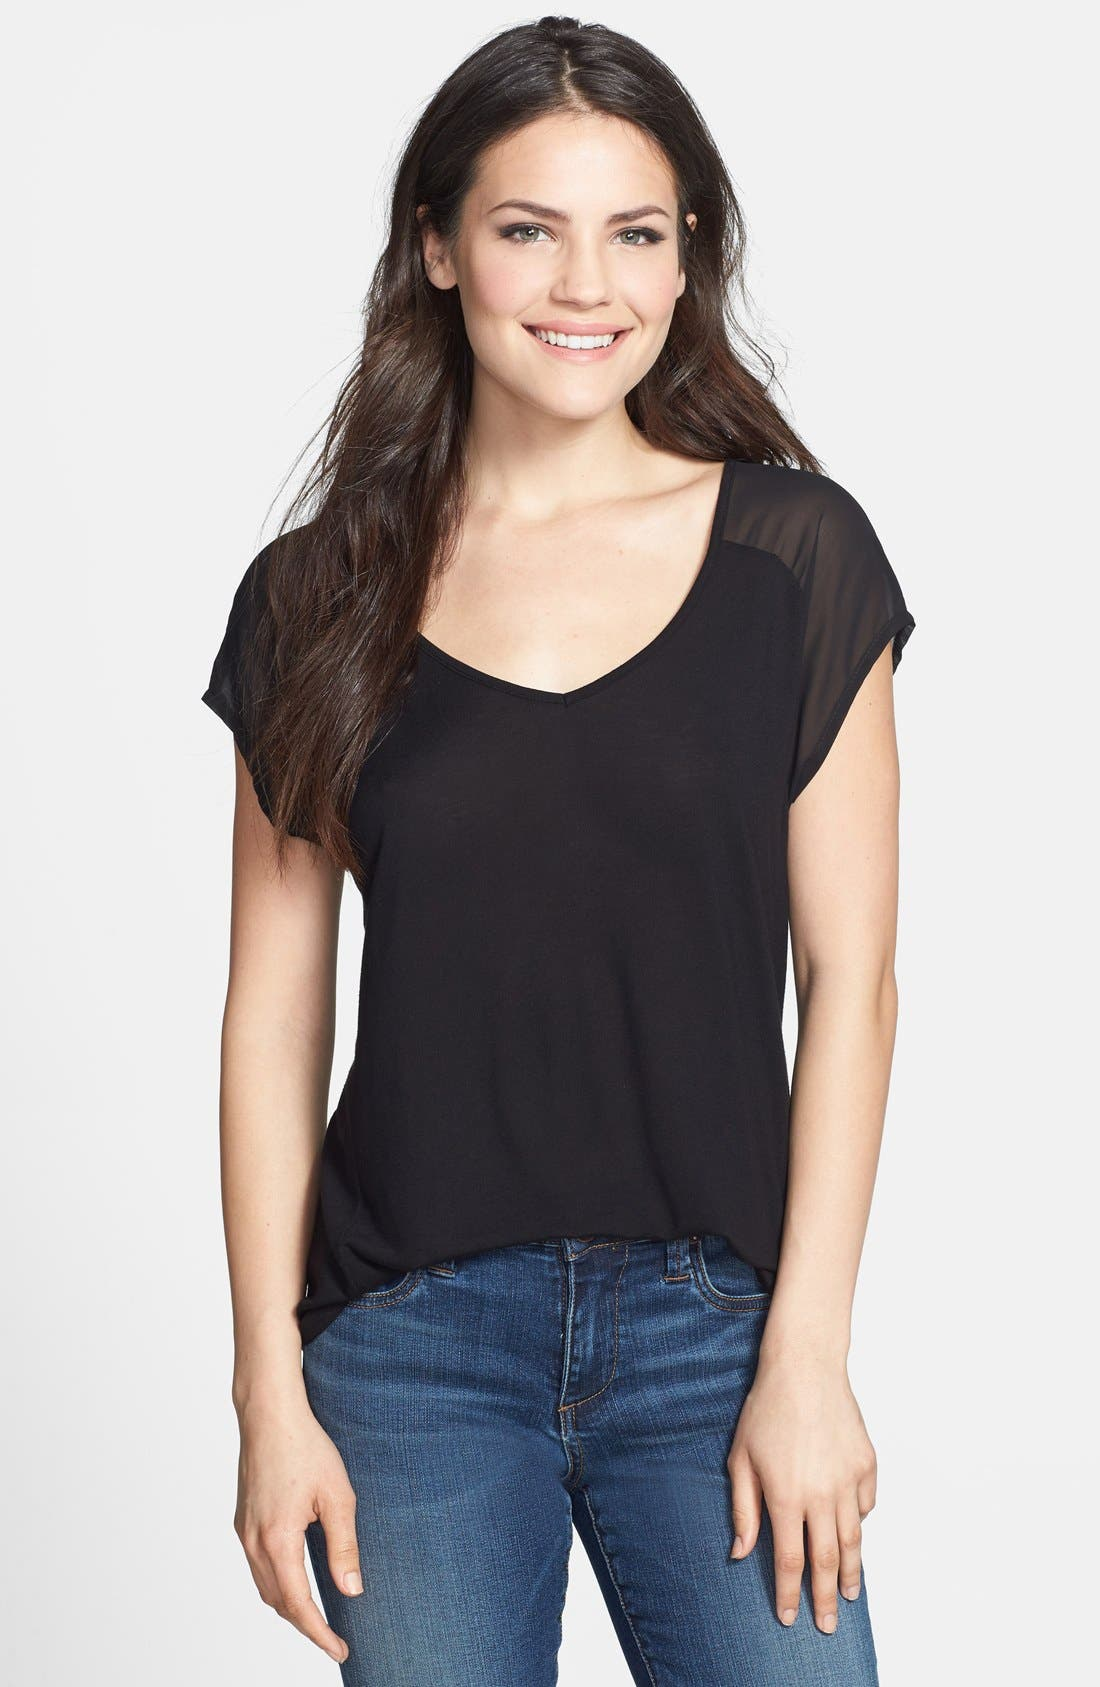 Alternate Image 1 Selected - Two by Vince Camuto Chiffon Sleeve V-Neck Tee